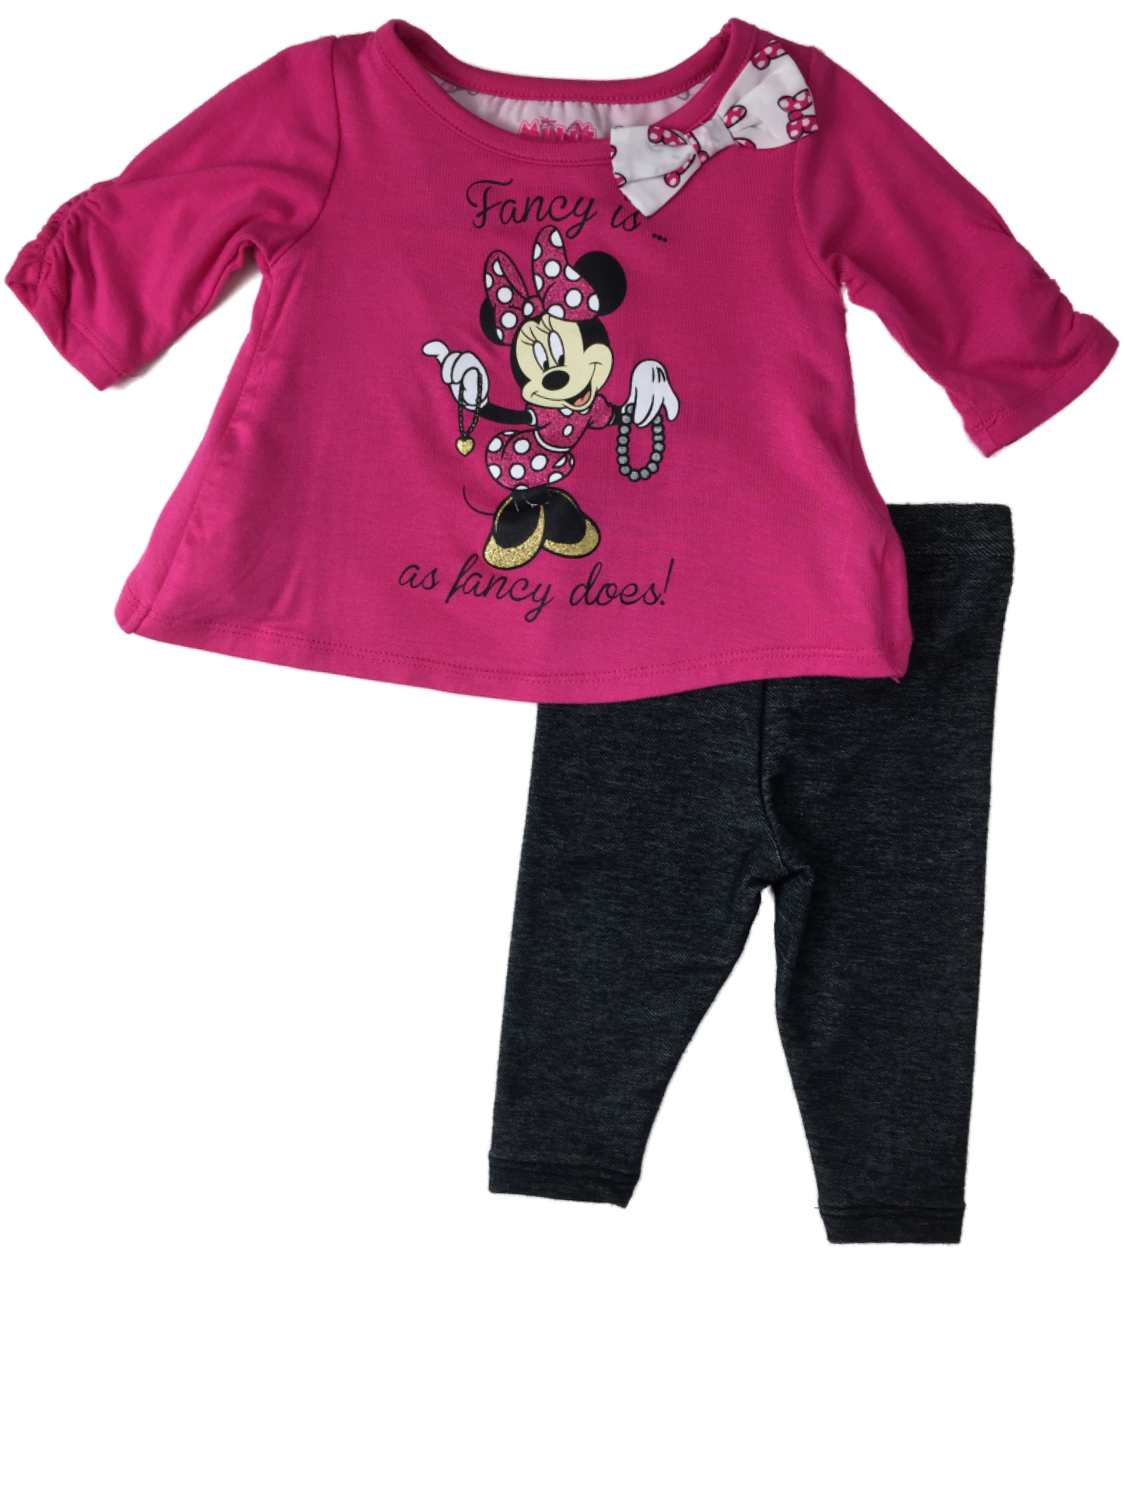 Infant Girls Pink Disney Minnie Mouse Fancy Is Fancy Does Denim Shorts Outfit